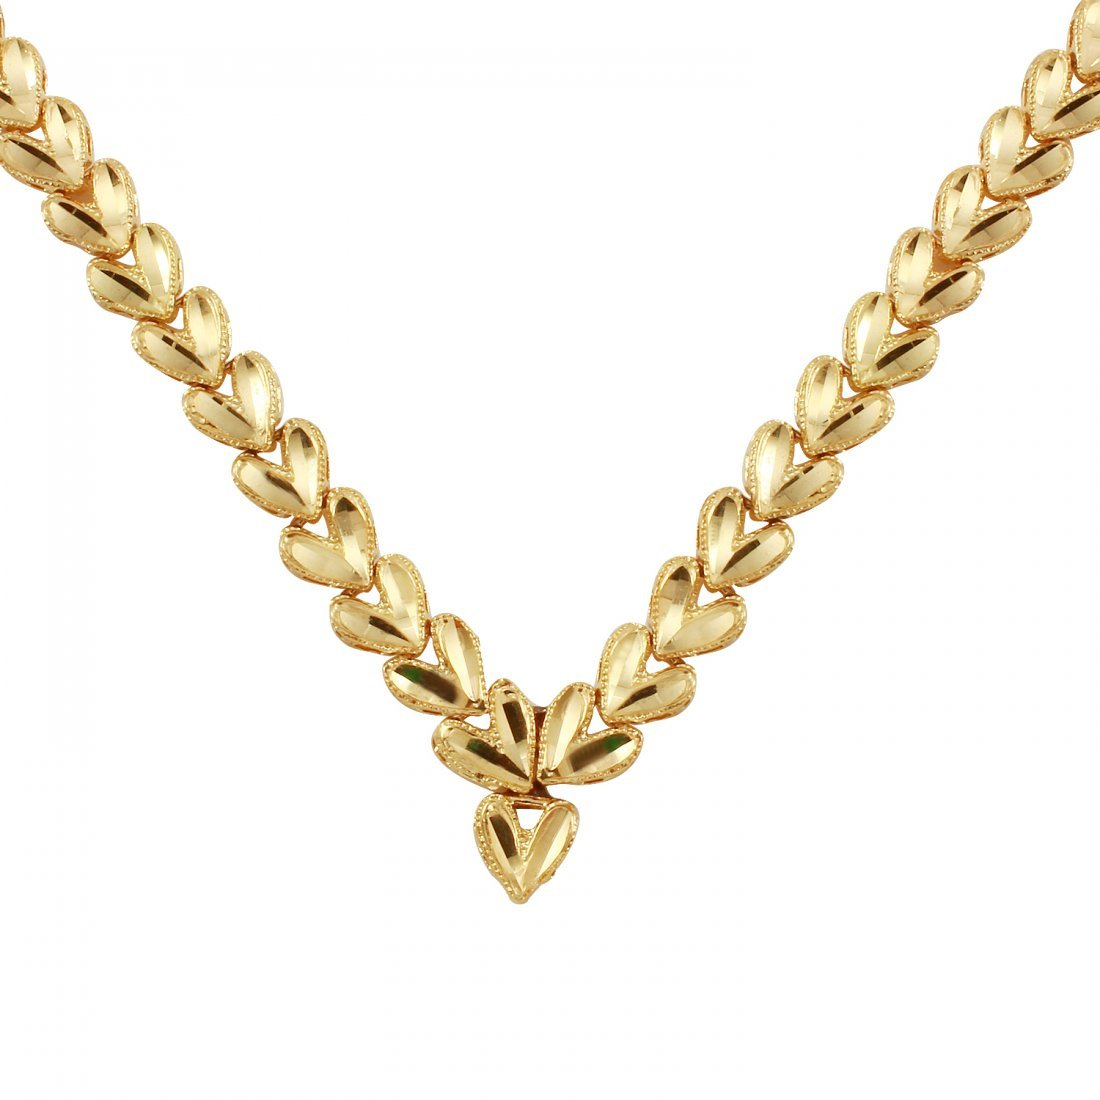 Ladies 14K Yellow Gold Necklace